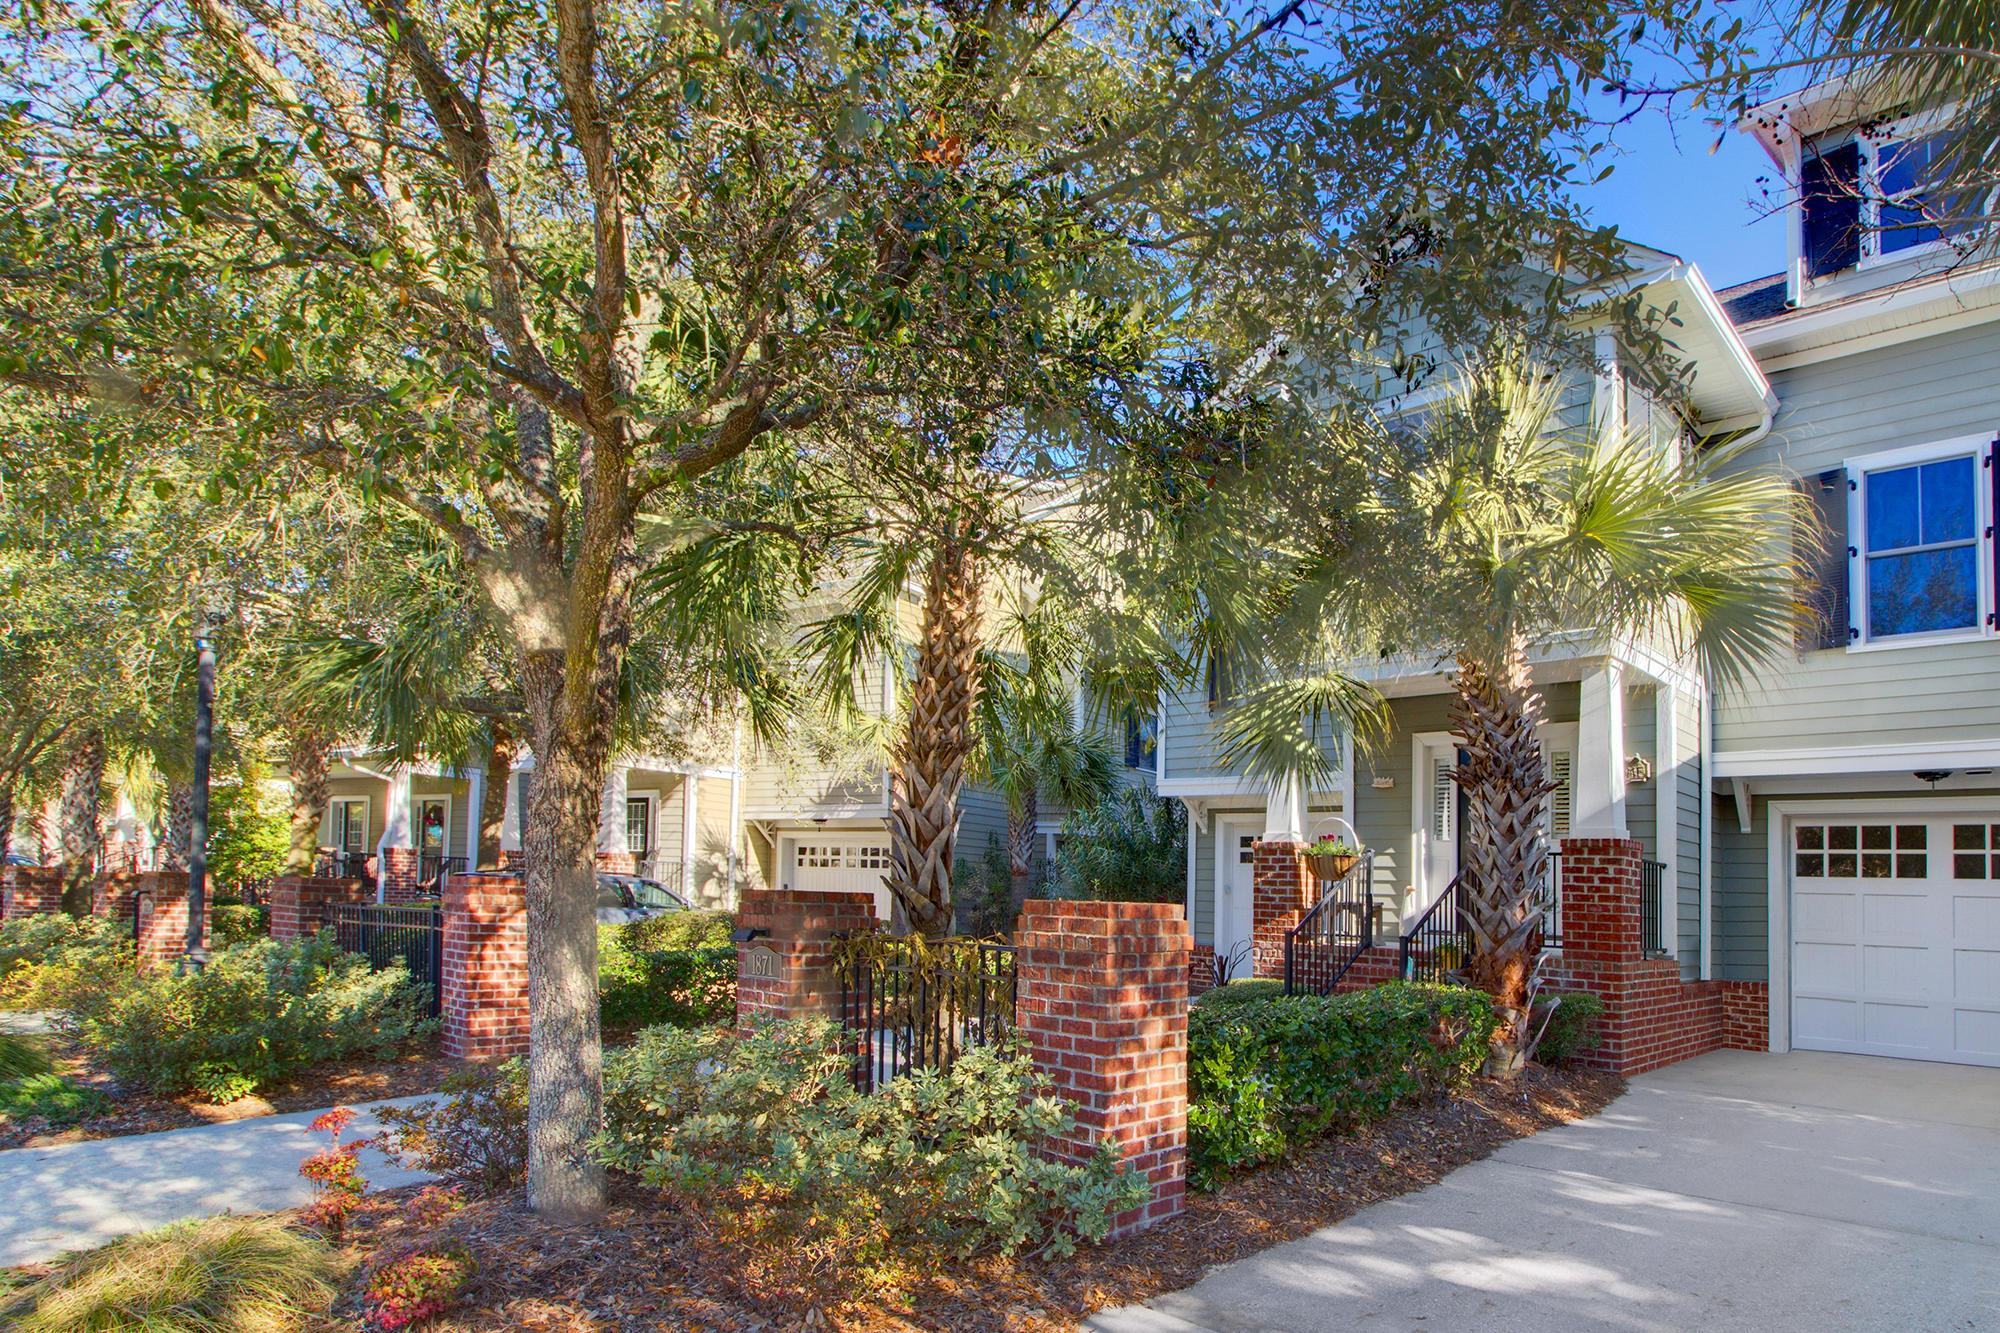 Home for sale 1871 Pierce Street, Barfield Park, Daniels Island, SC